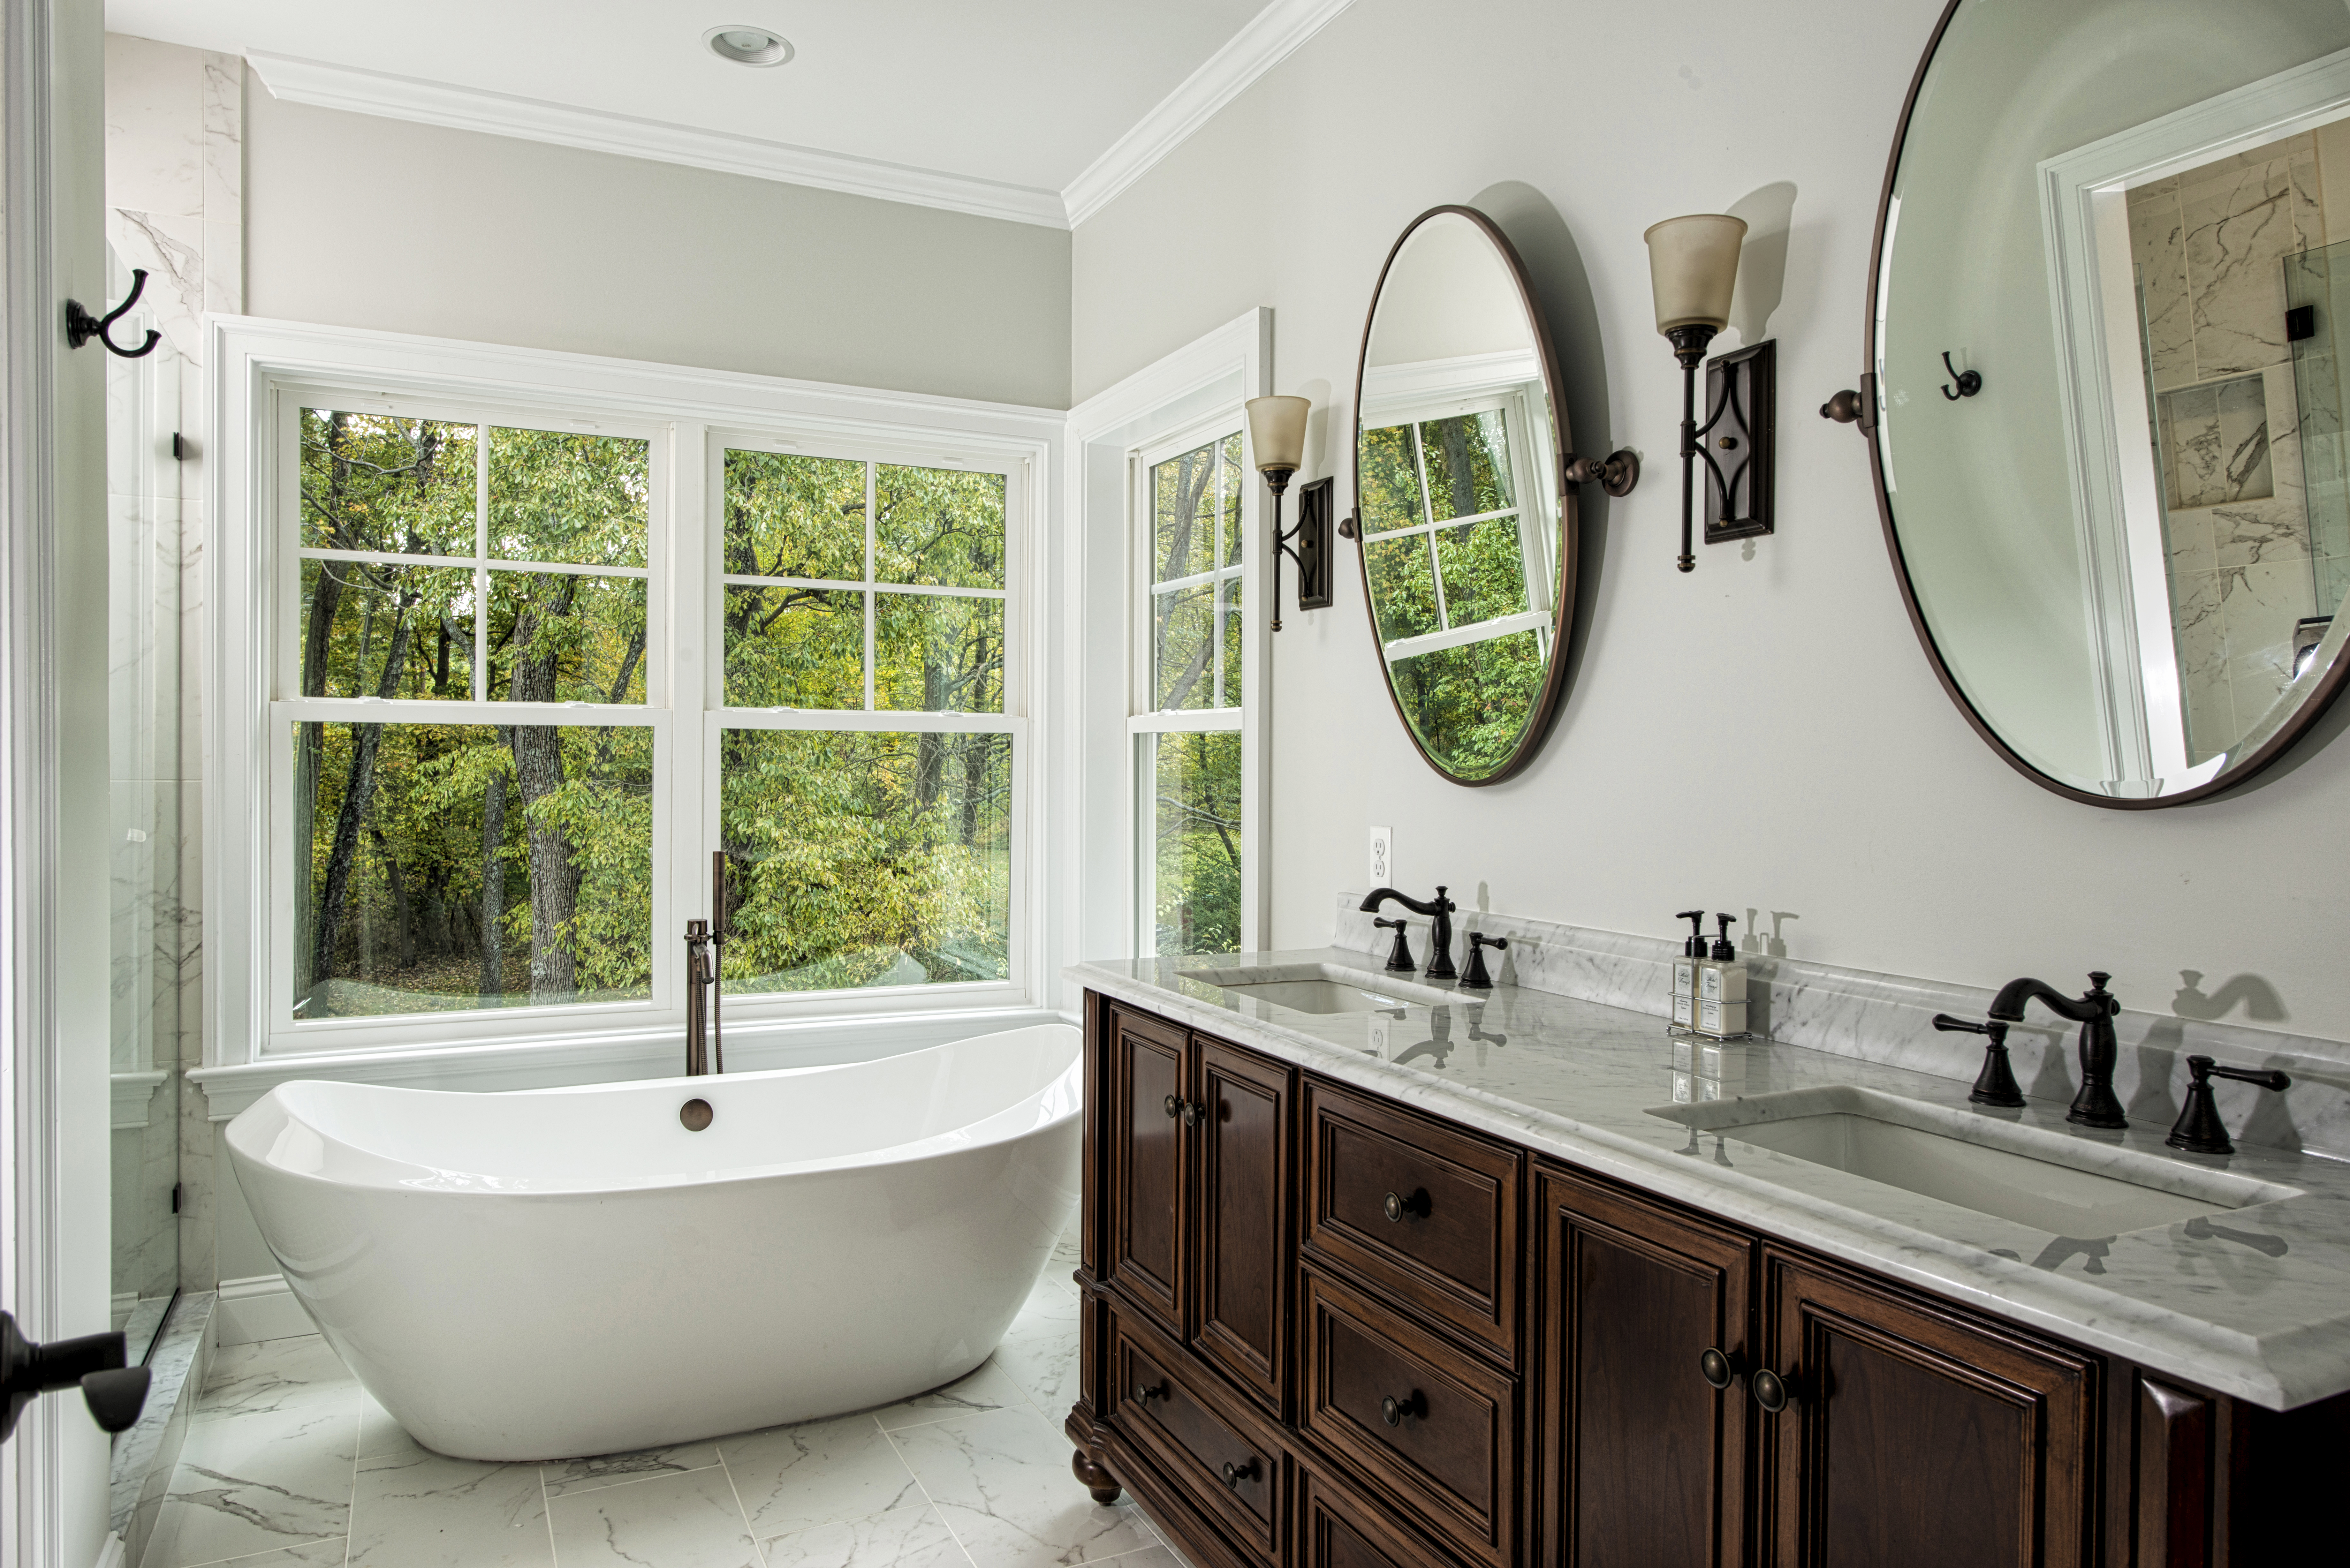 7 Spa Inspired Ideas For Your New Master Bathroom Commonwealth Home Design